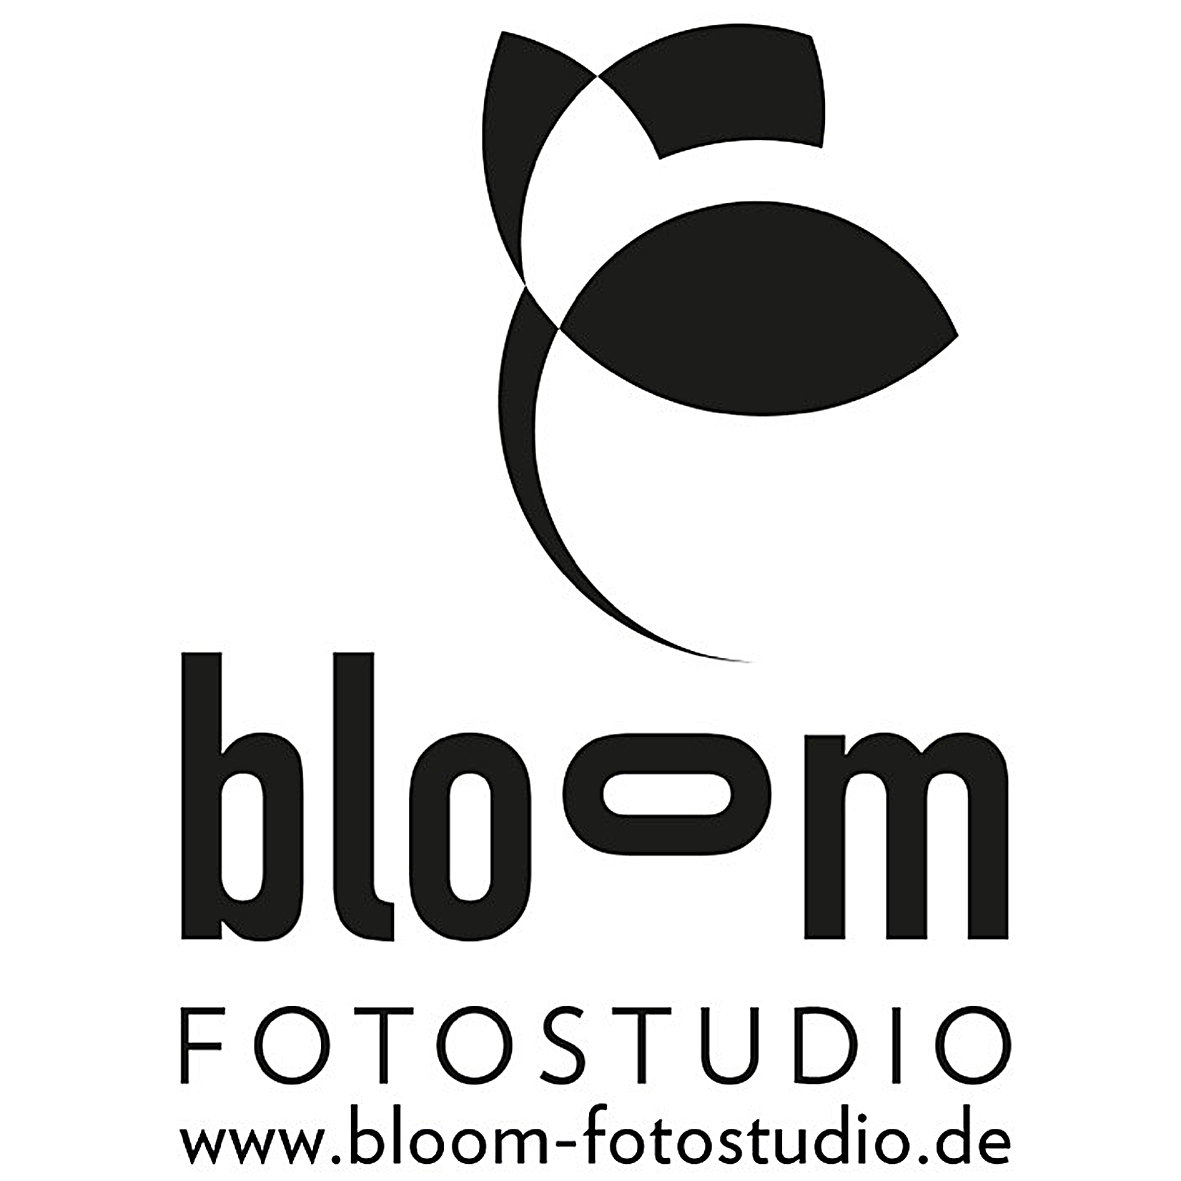 Bloom Fotostudio